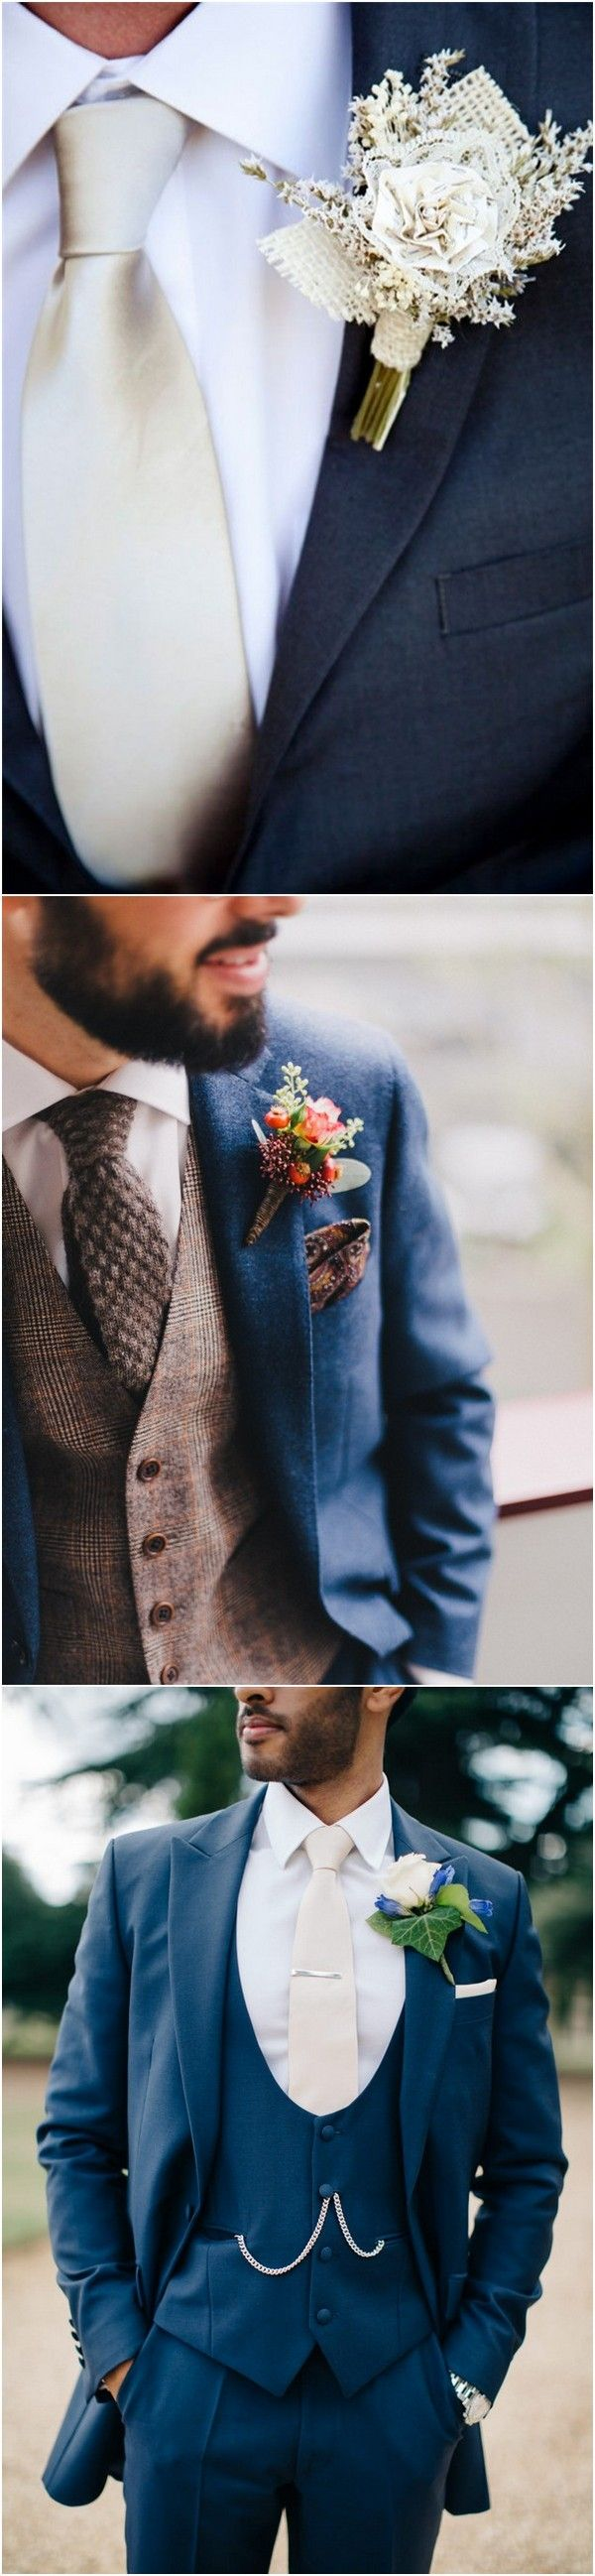 amazing groom suit wedding ideas with metallic tie